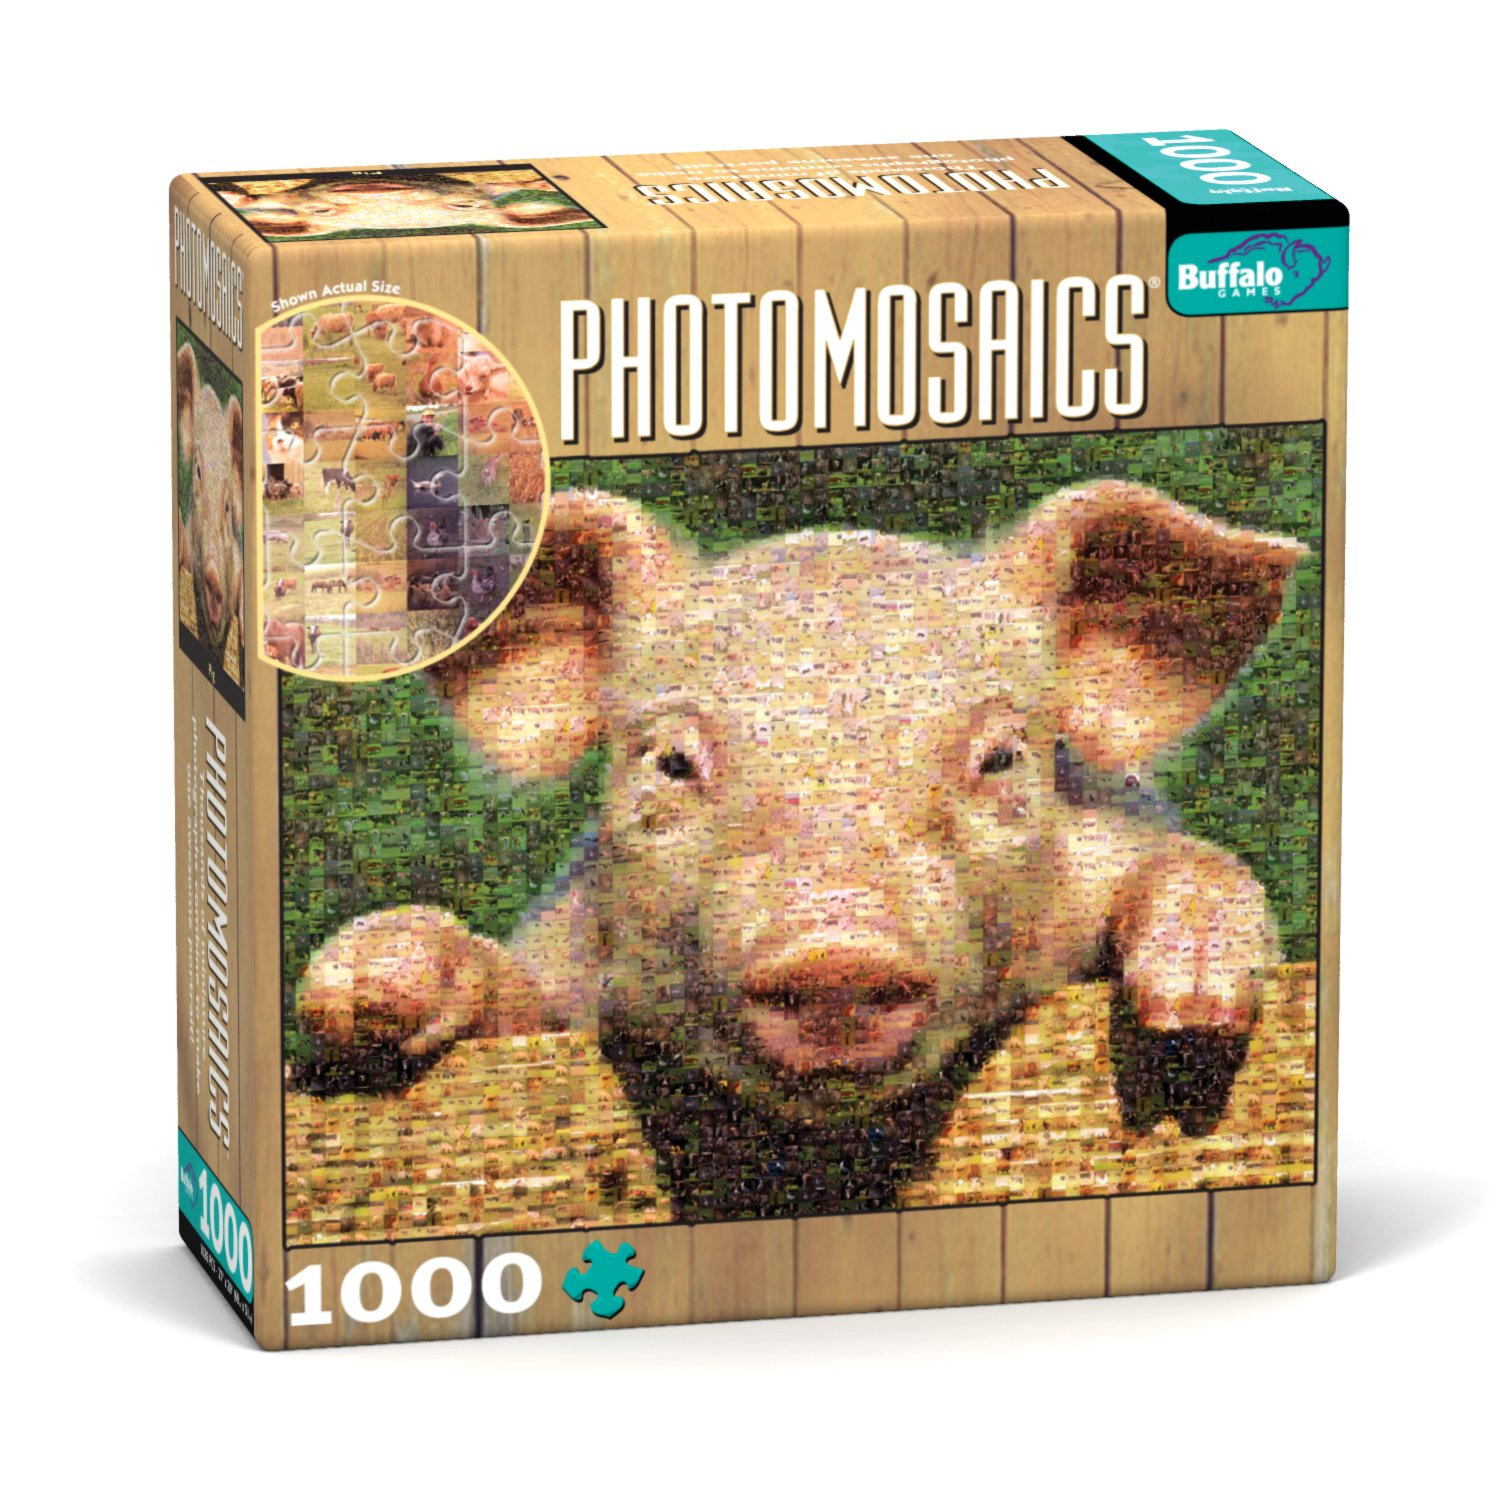 Buffalo Games Photomosaic, Pig - 1000pc Jigsaw Puzzle by Buffalo Games (Image #1)